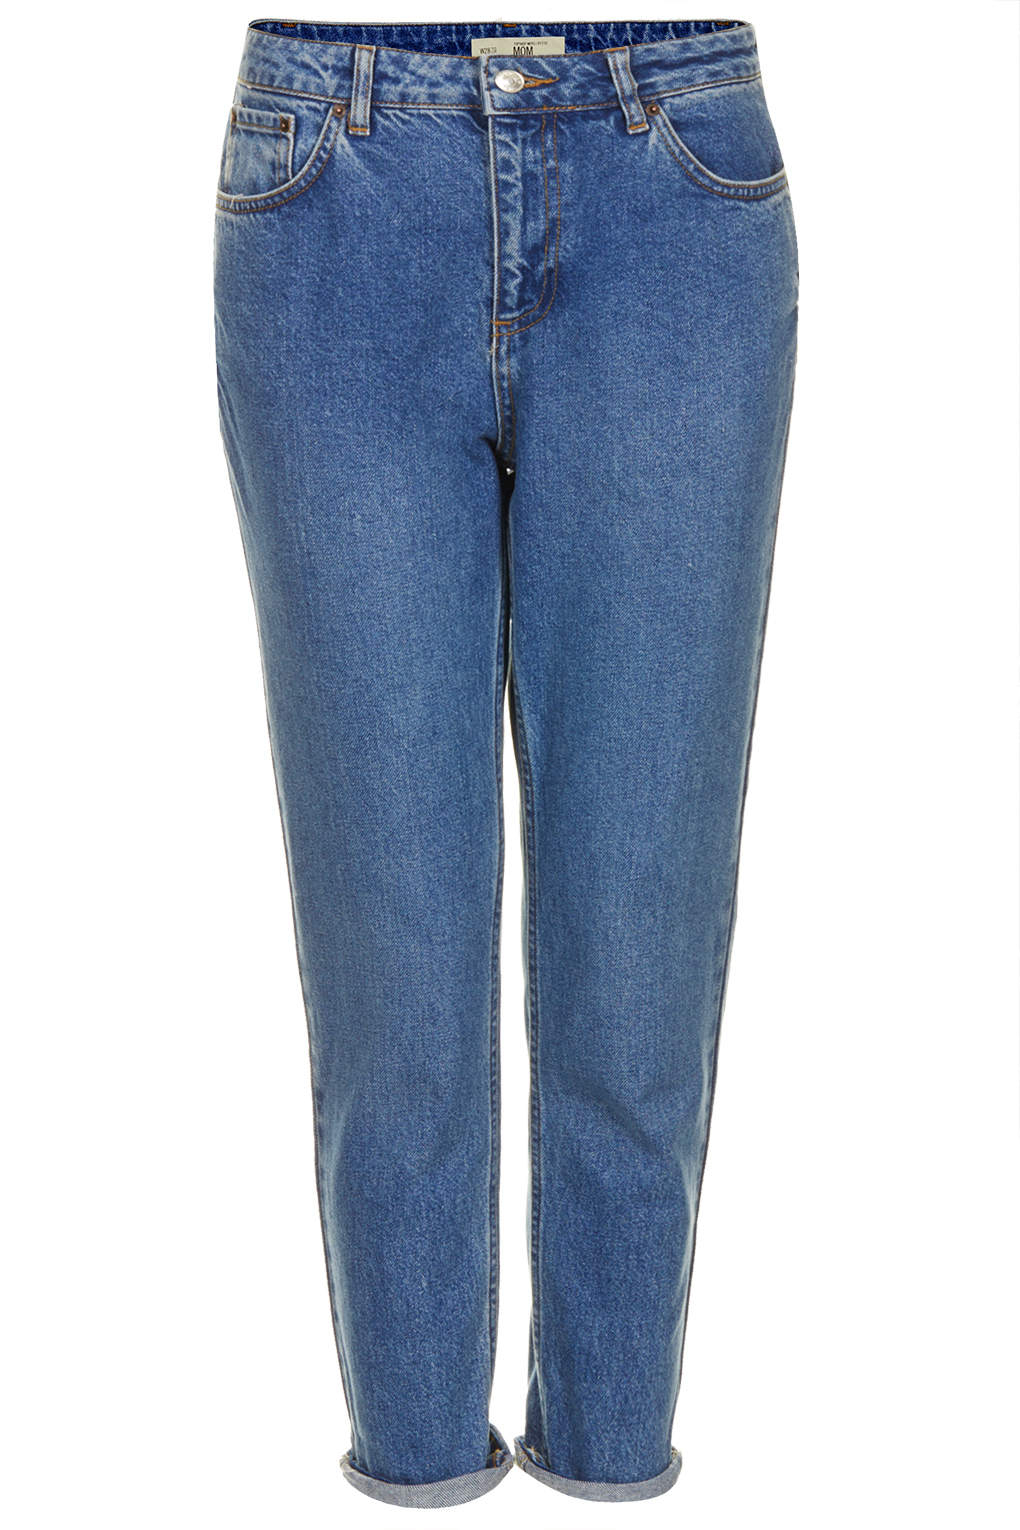 Machine Jeans Womens